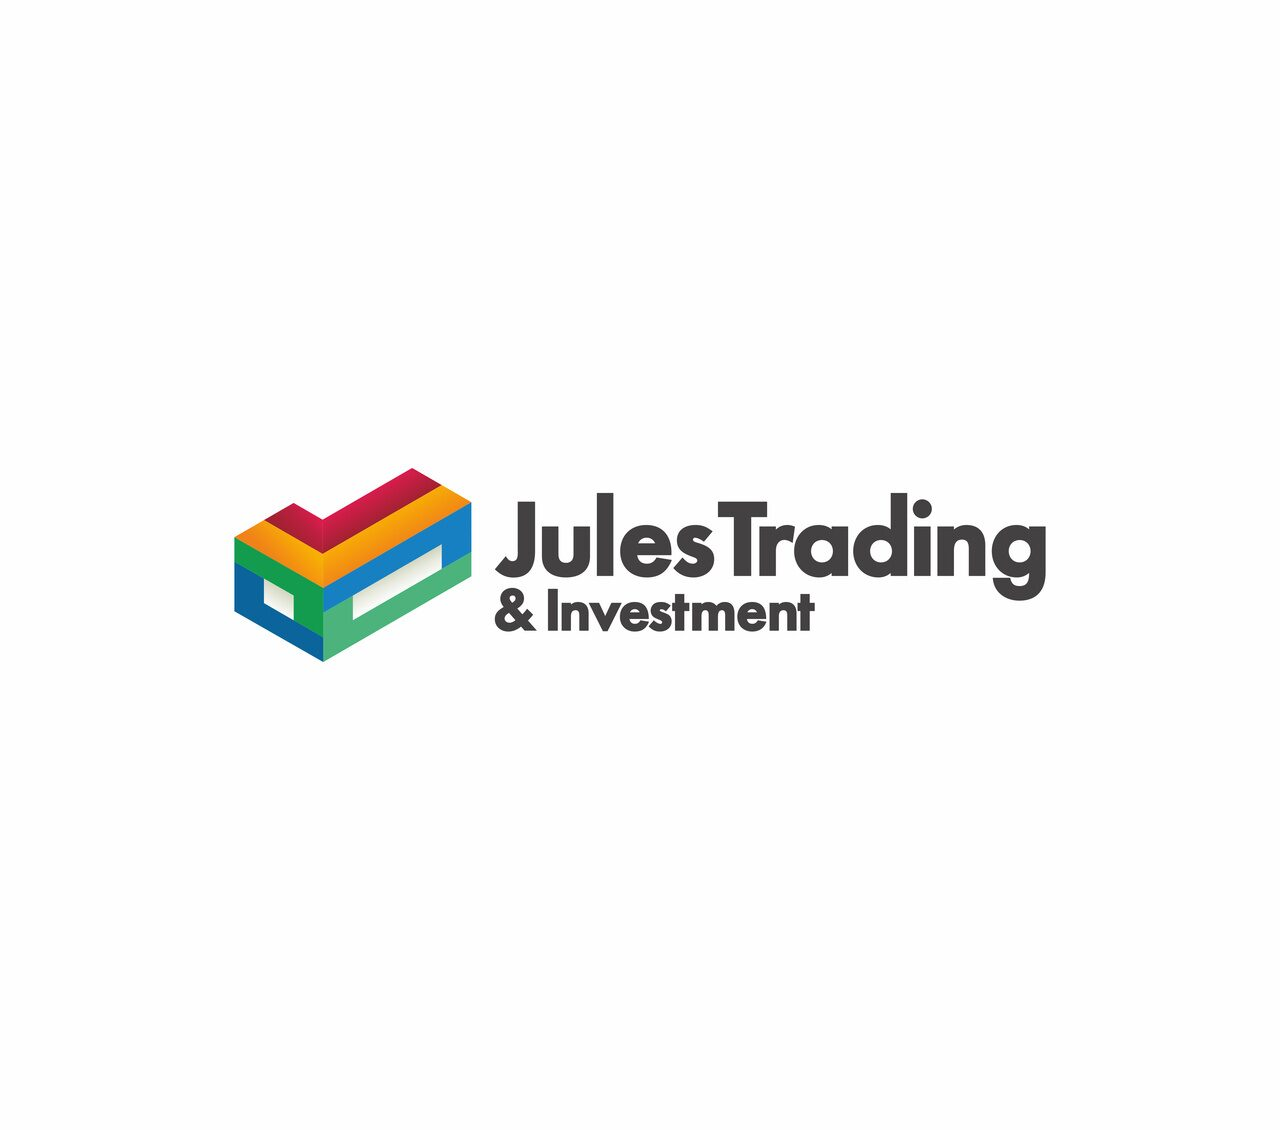 Jules Trading